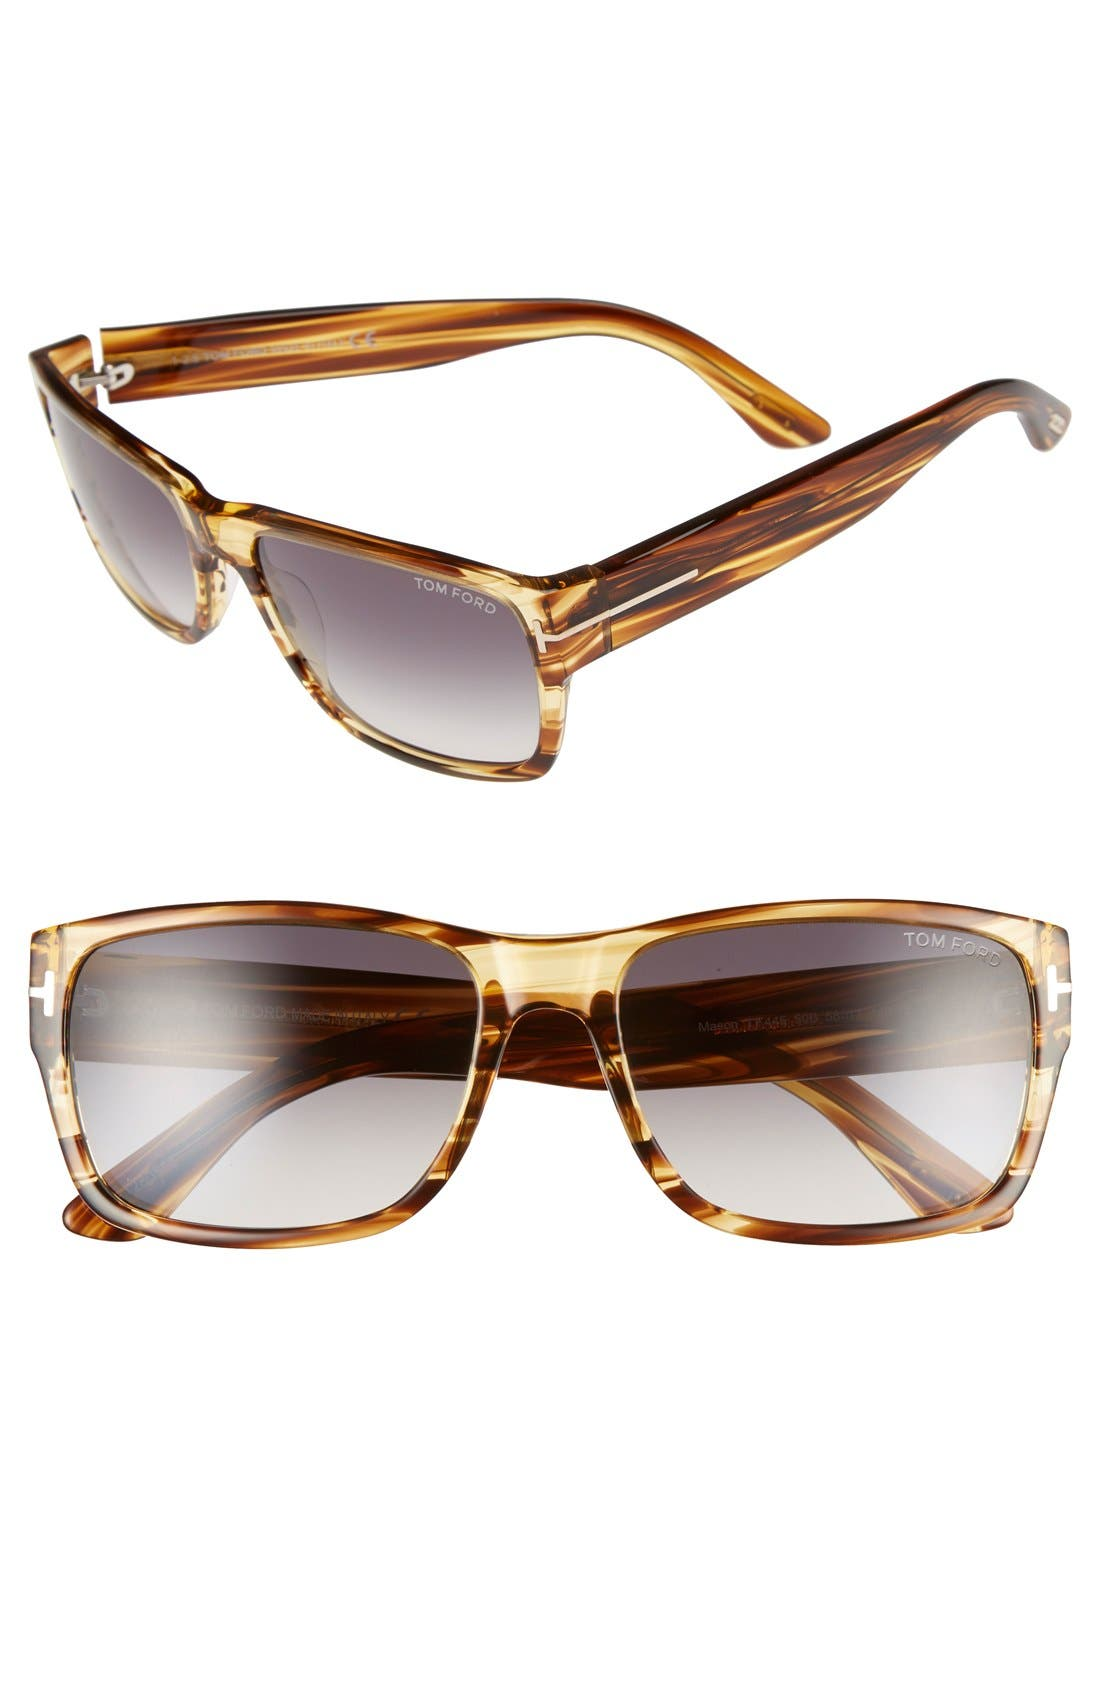 Main Image - Tom Ford 'Mason' 58mm Sunglasses